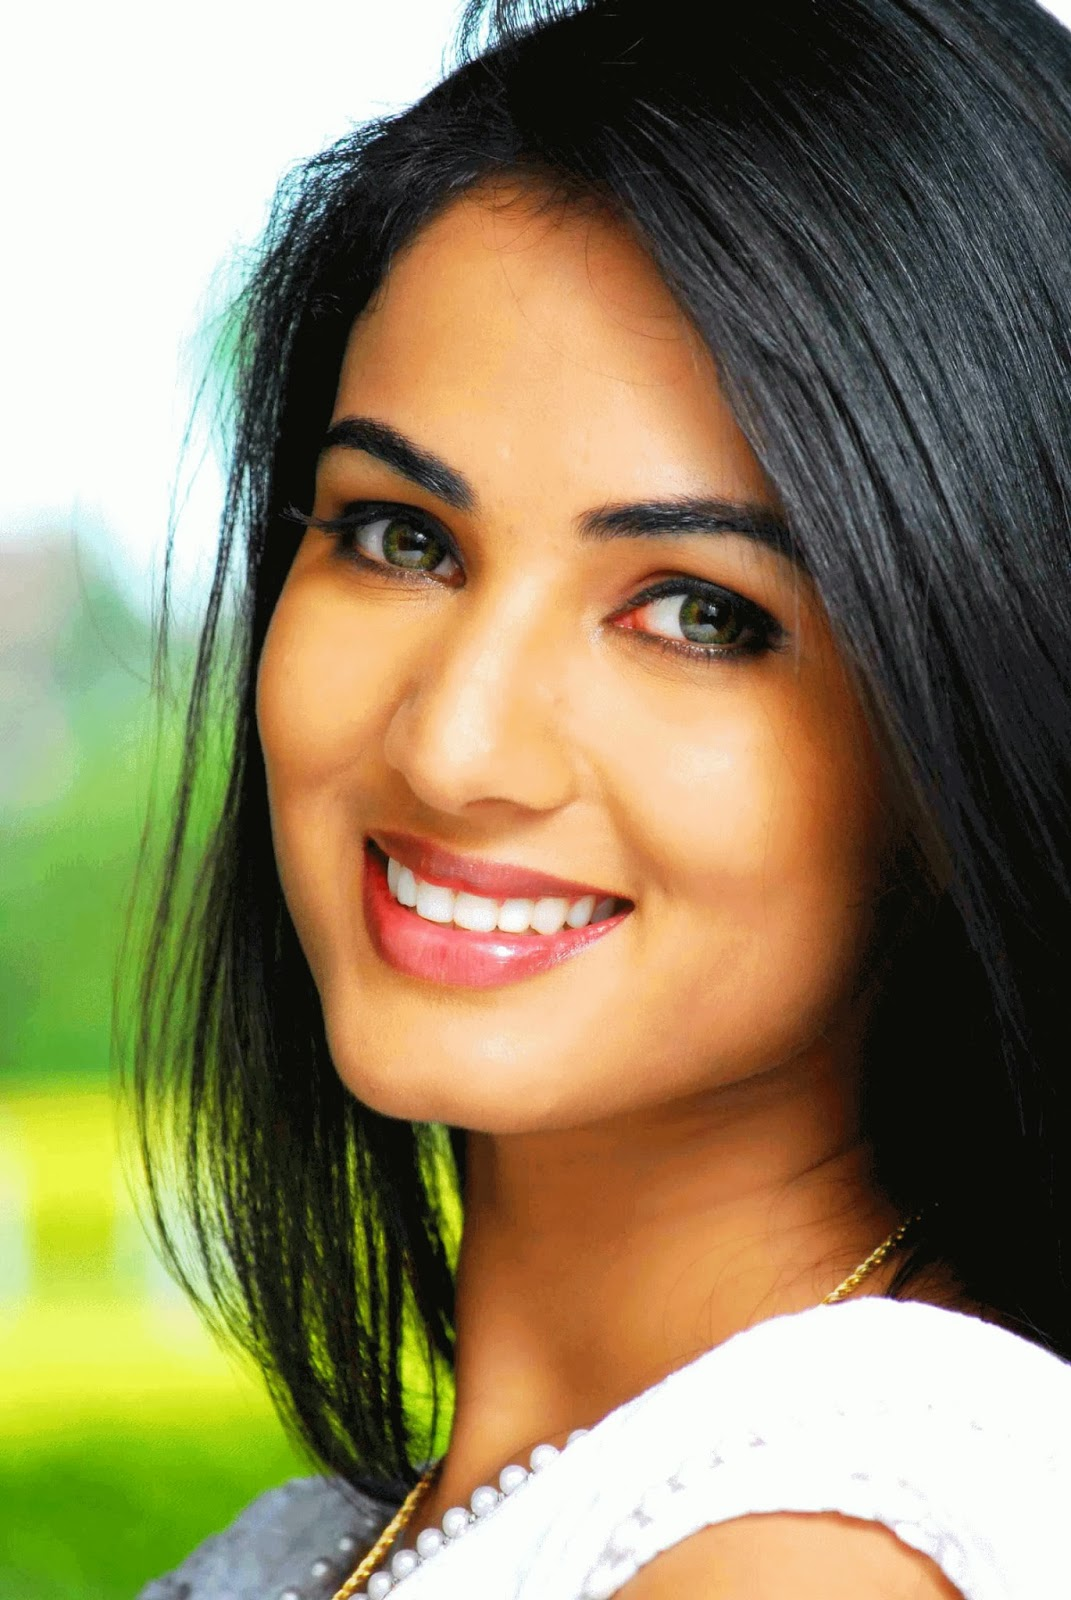 All new wallpaper : Sonal Chauhan HD Wallpapers Free Download